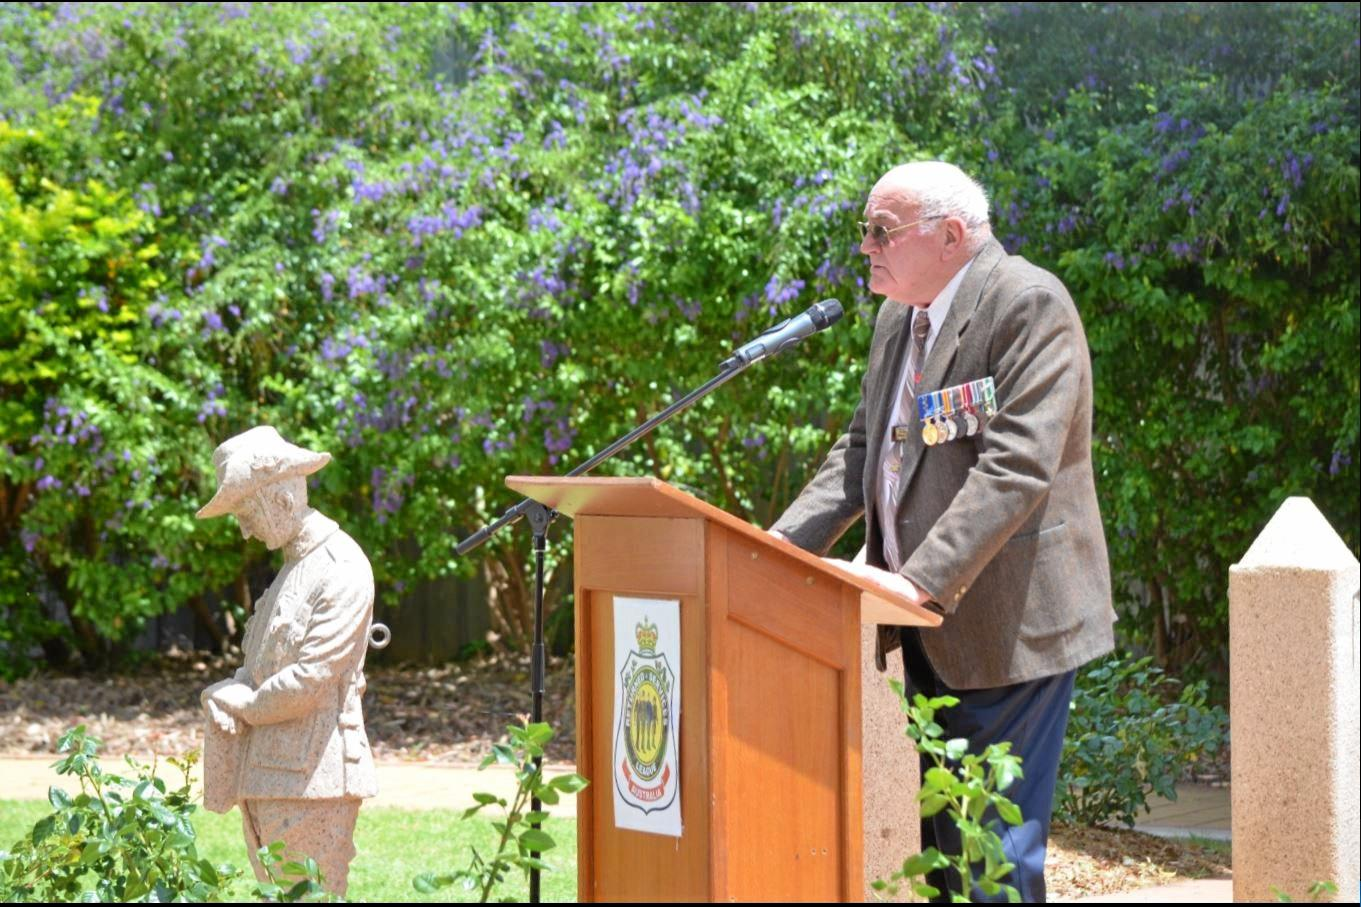 RSL sub-branch president George Donohue giving an address at a Remembrance Day service.